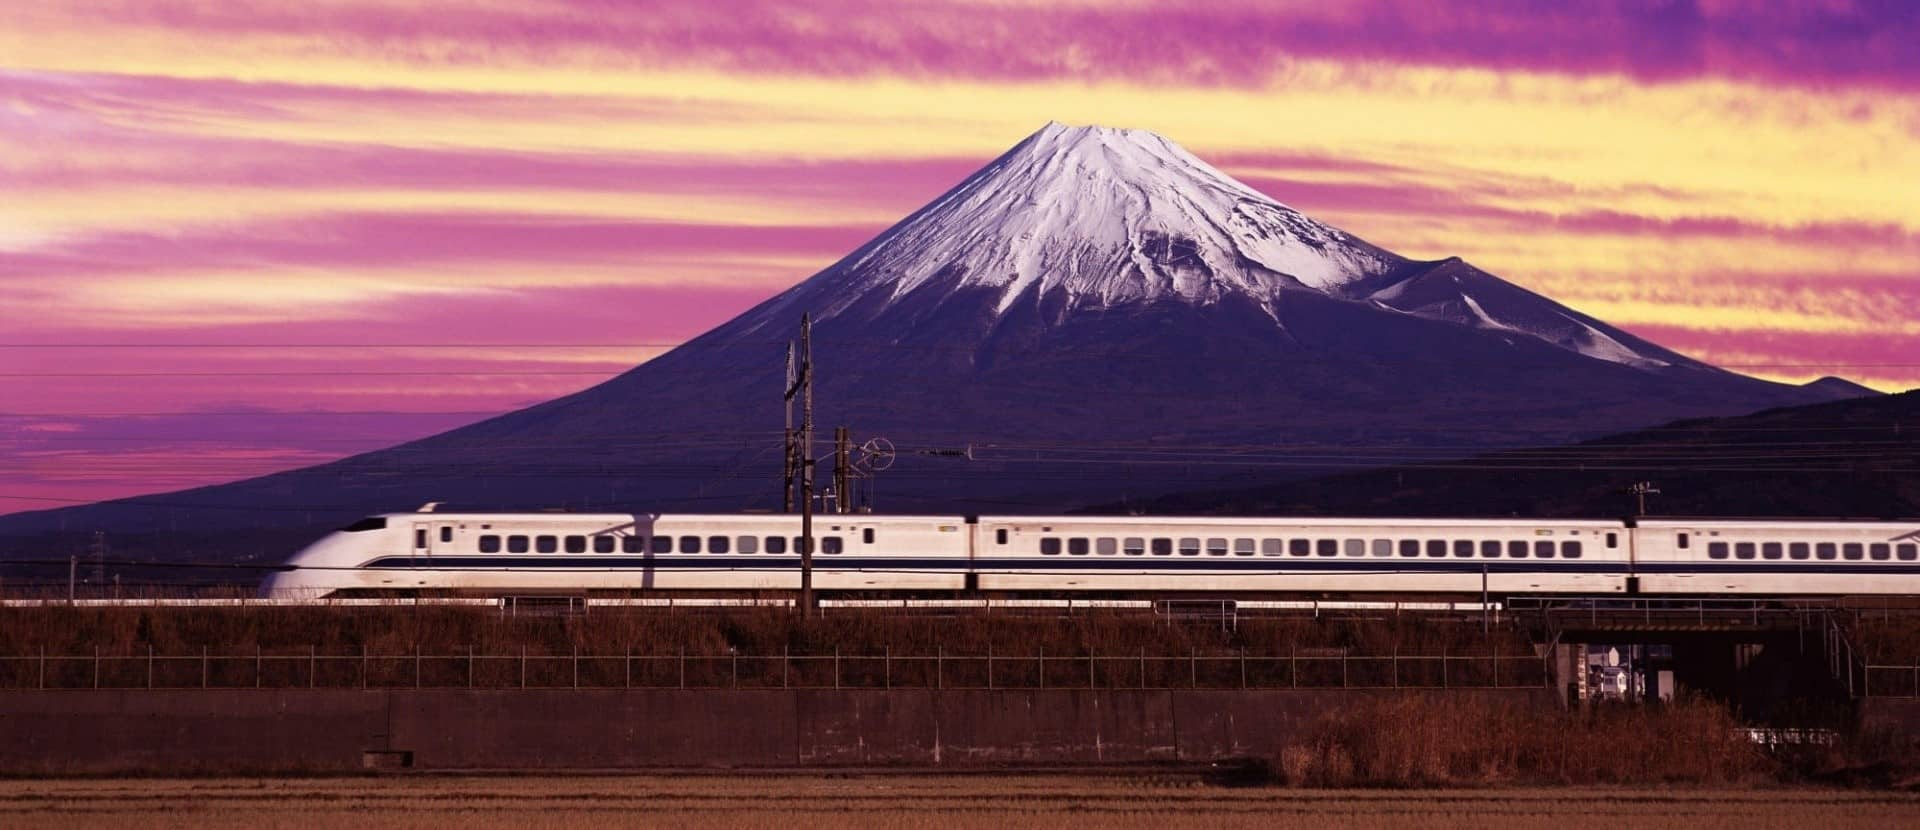 Shinkansen bullet train and Mt. Fuji, Japan